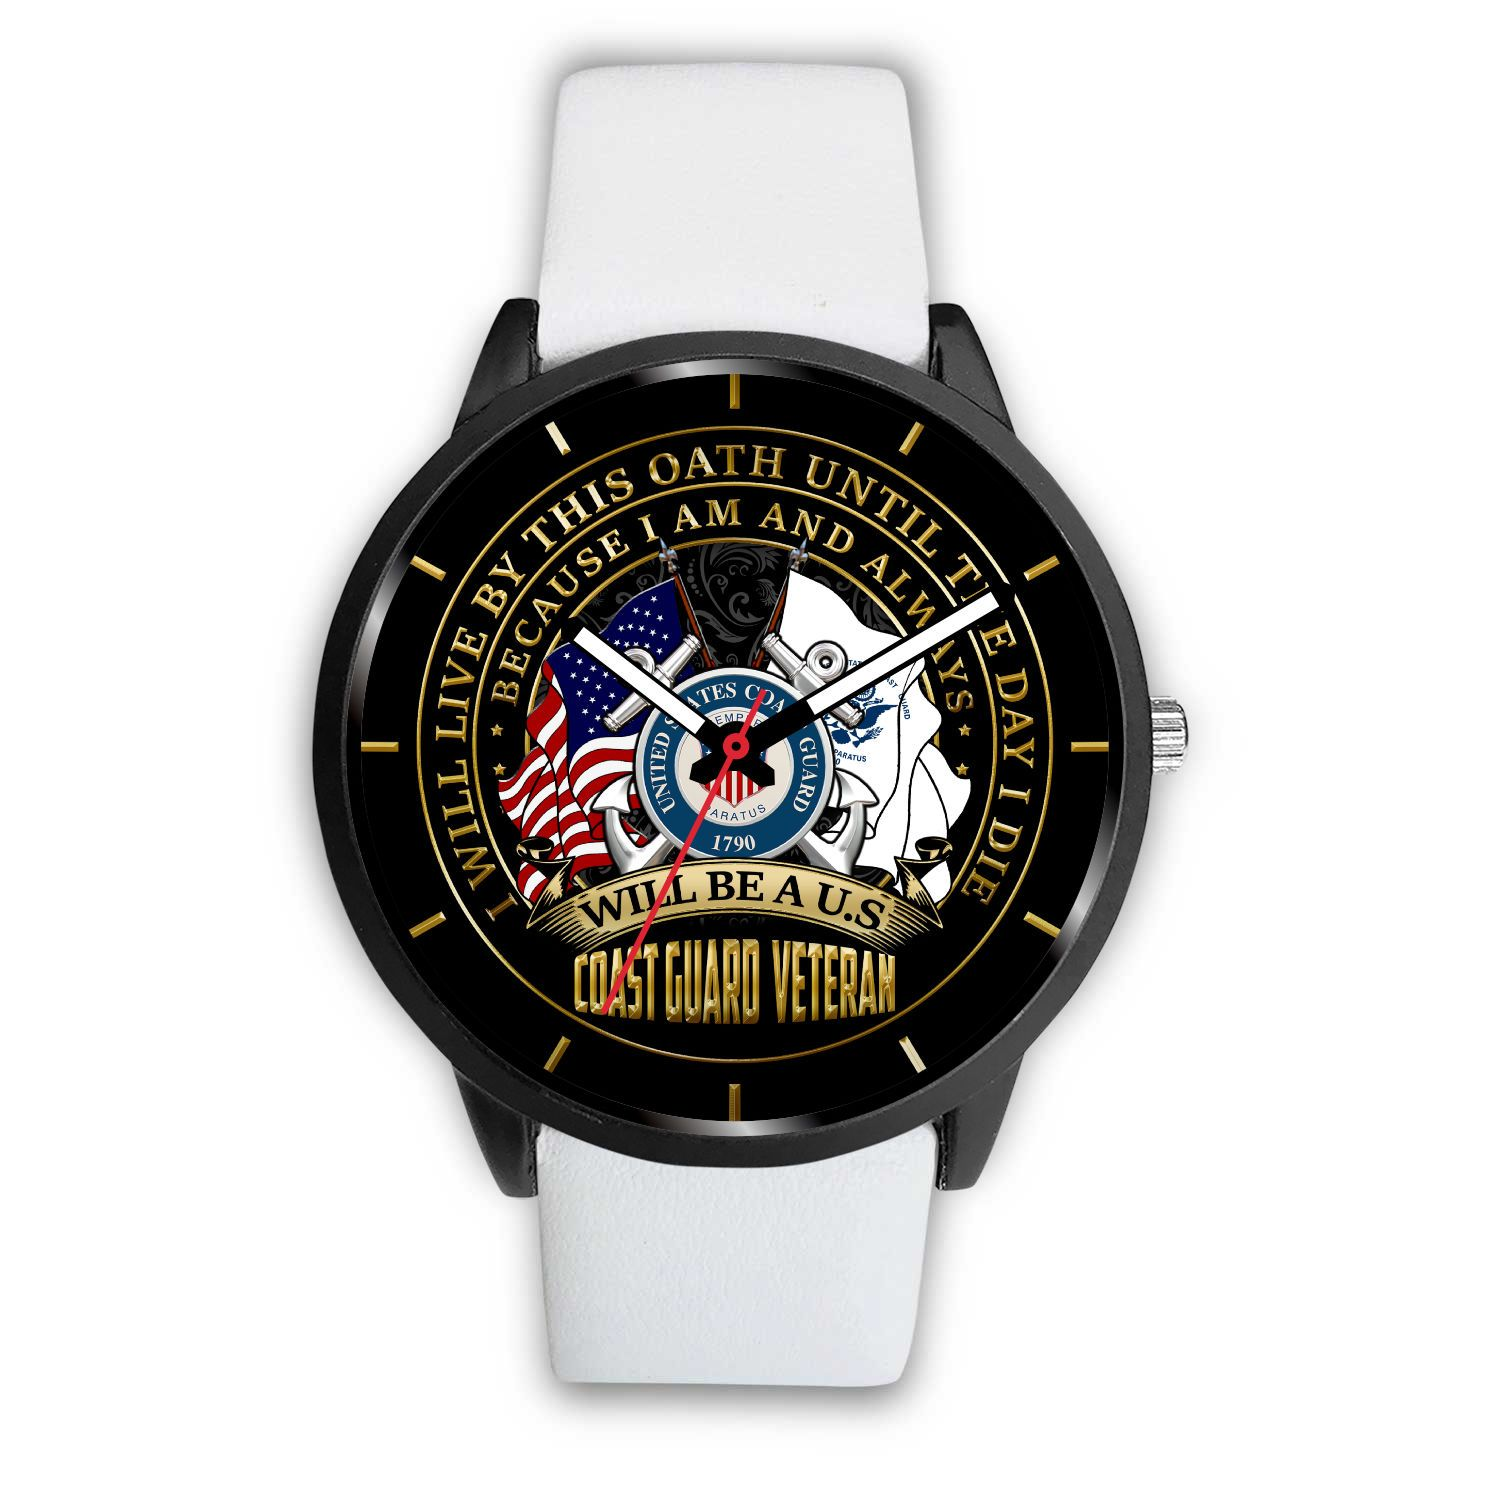 i-will-live_b9478cac-743b-5946-8ff4-6d1bce96350a I WILL LIVE BY THIS OATH UNTIL THE DAY I DIE BECAUSE I AM AND ALWAYS WILL BE A U.S COAST GUARD VETERAN WATCH  %tag